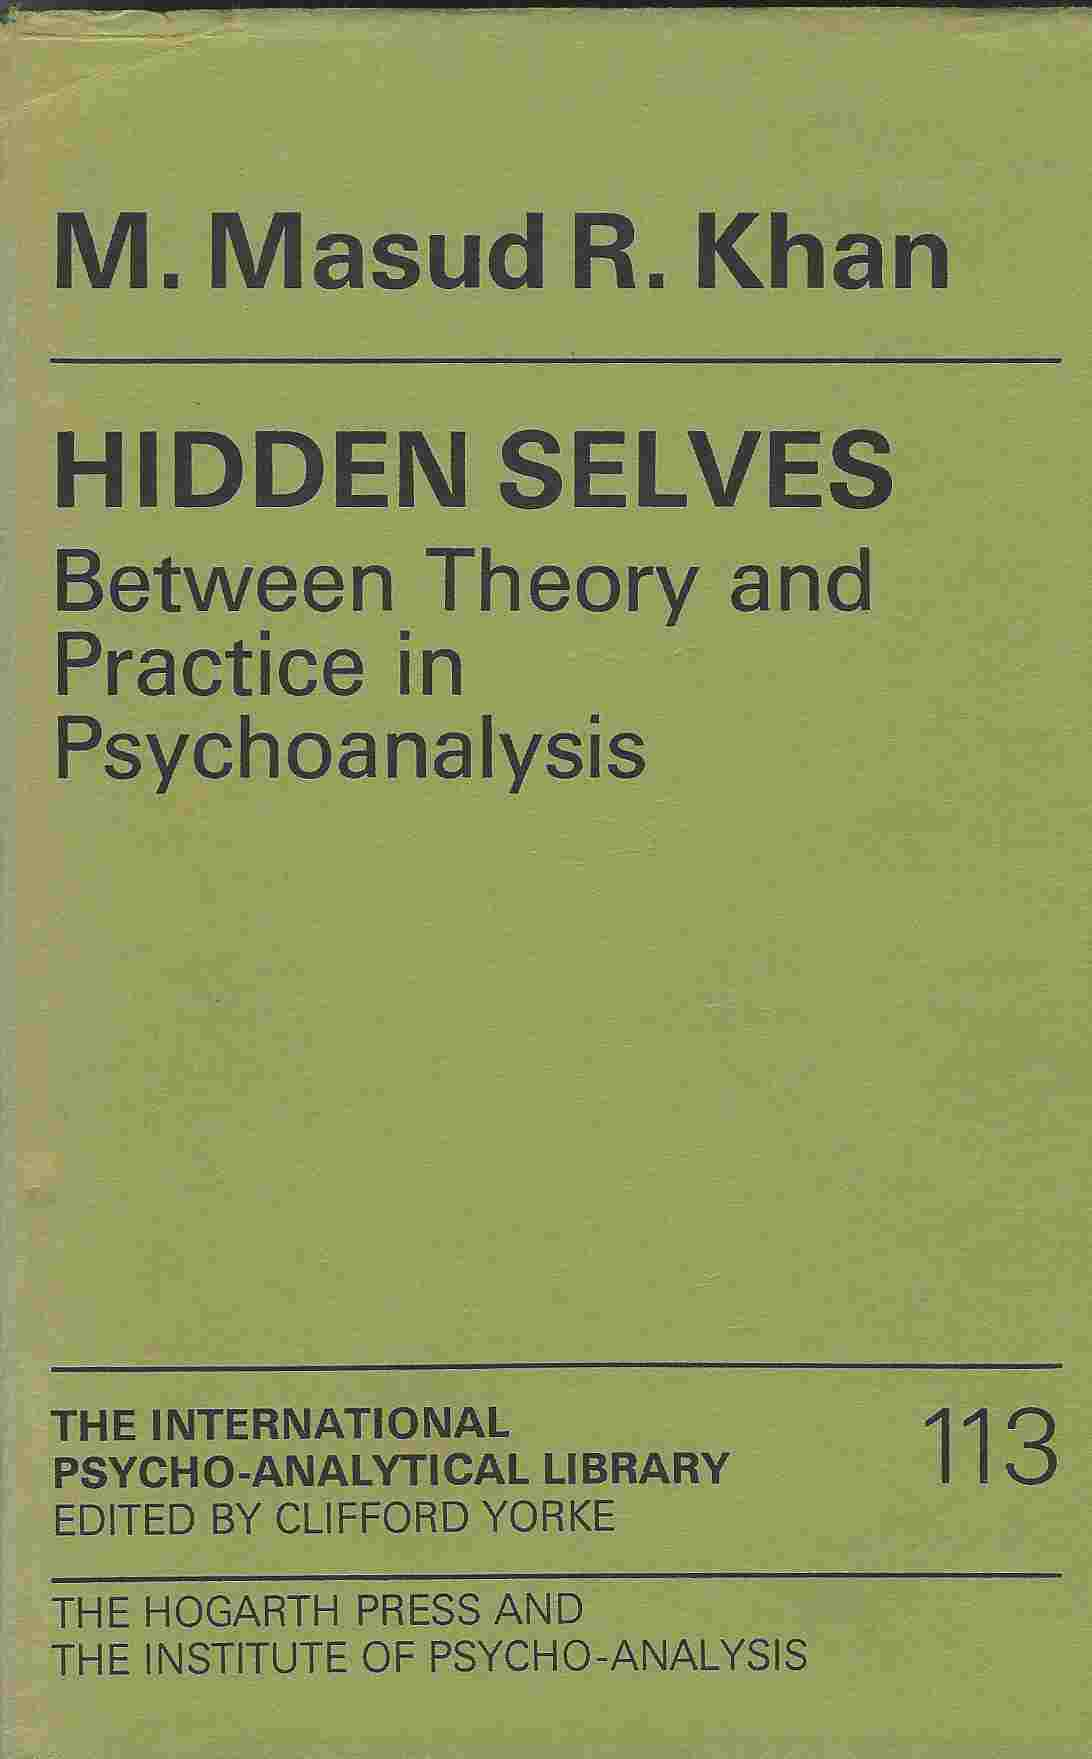 Image for Hidden Selves: Between Theory and Practice in Psychoanalysis